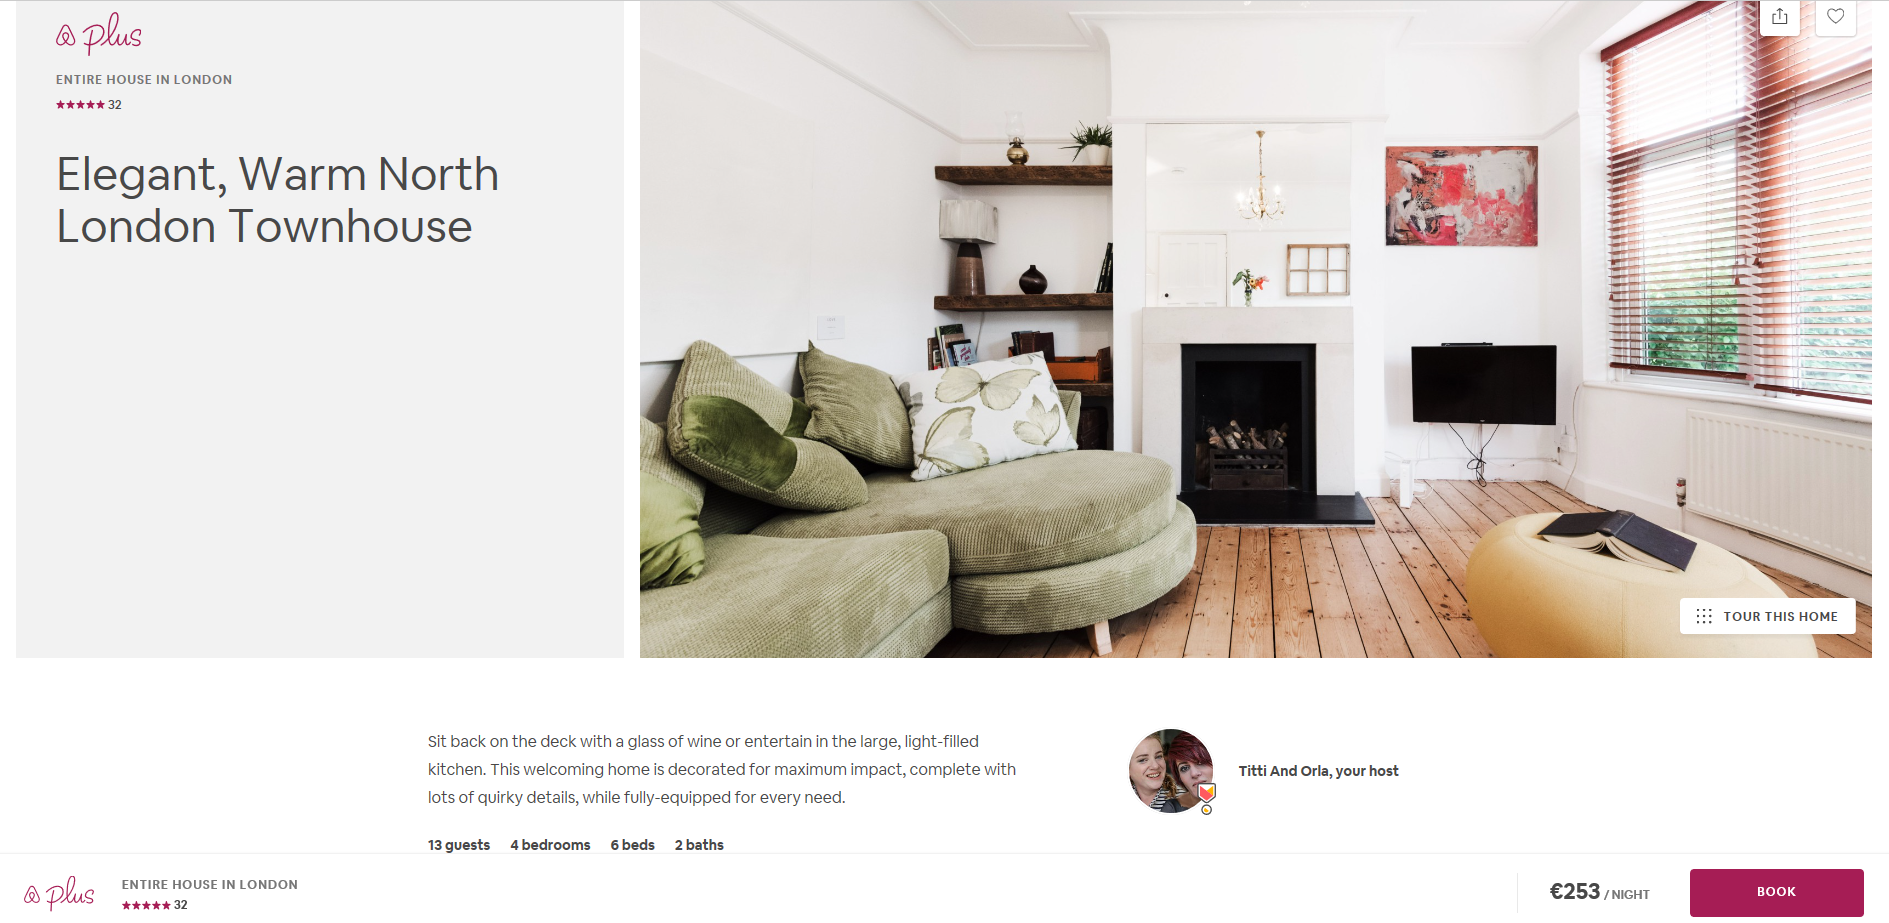 Airbnb select listing